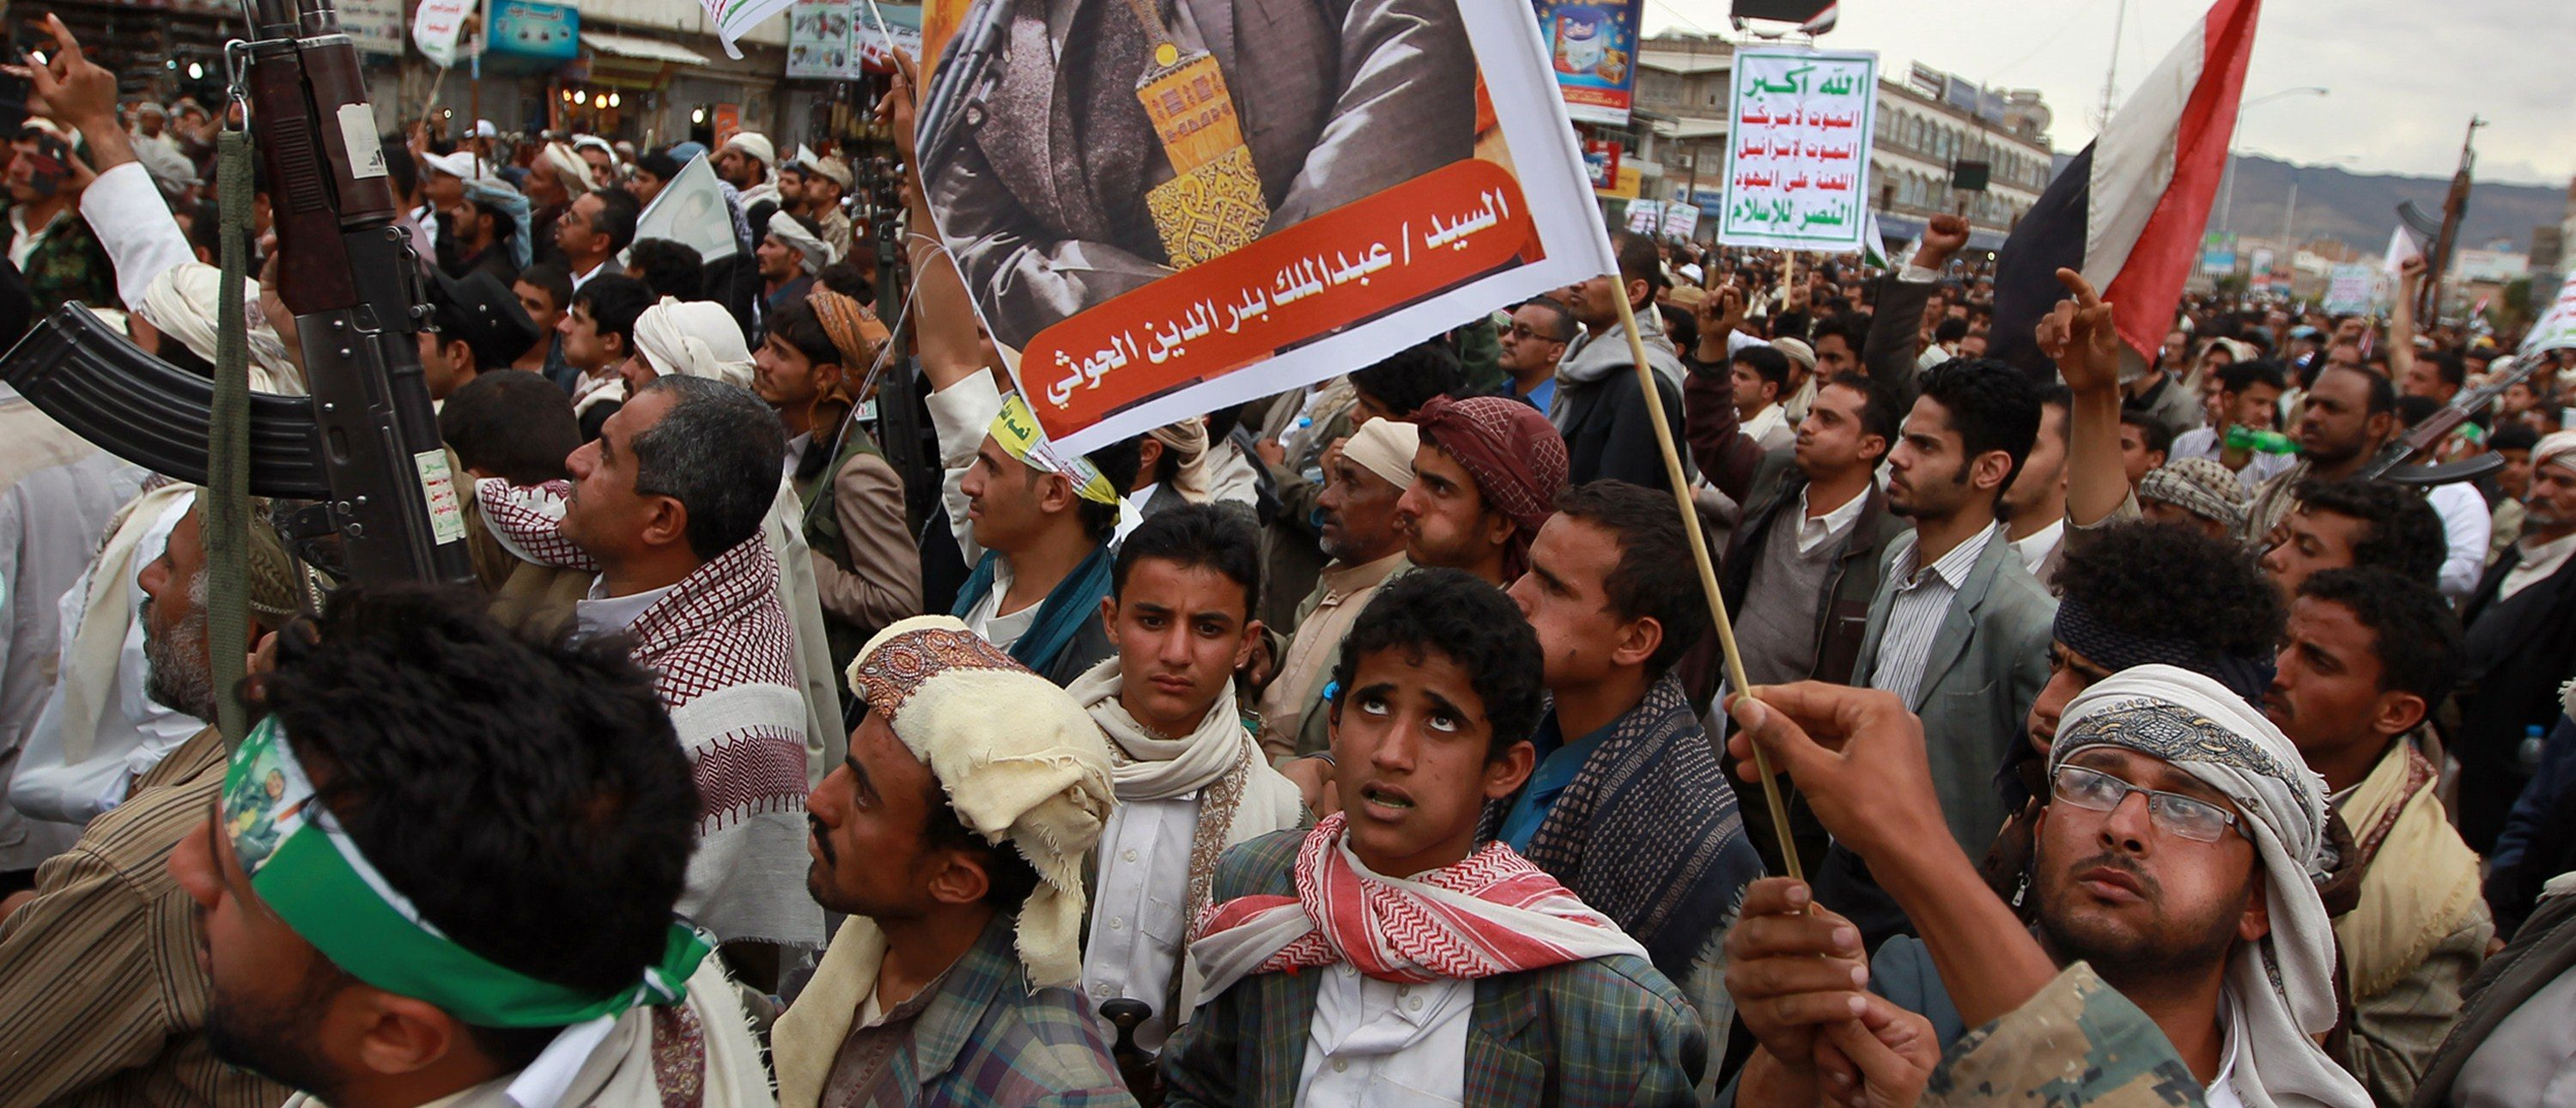 """Yemeni supporters of the Shiite Huthi militia hold a portrait the movement's leader, Abdul-Malik al-Huthi, on March 26, 2015, during a gathering in Sanaa to show support the militia and against the Saudi-led intervention in the country. Warplanes from a Saudi-led Arab coalition bombed Huthi rebels in support of Yemen's embattled president, as regional rival Iran warned the intervention was a """"dangerous"""" move. MOHAMMED HUWAIS/AFP/Getty Images"""